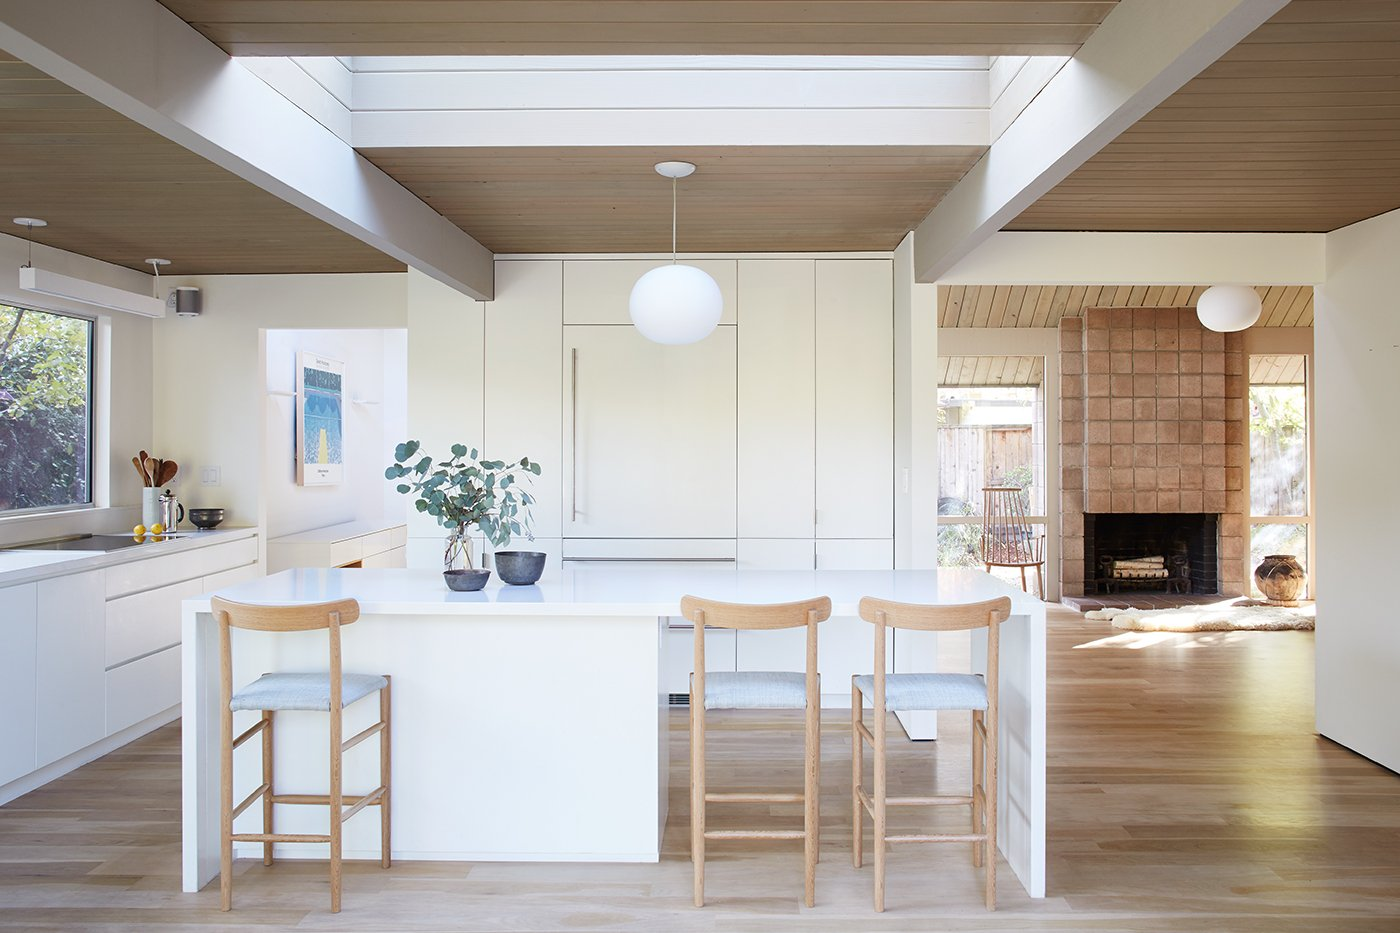 Eichler home - Reenwood House - kitchen